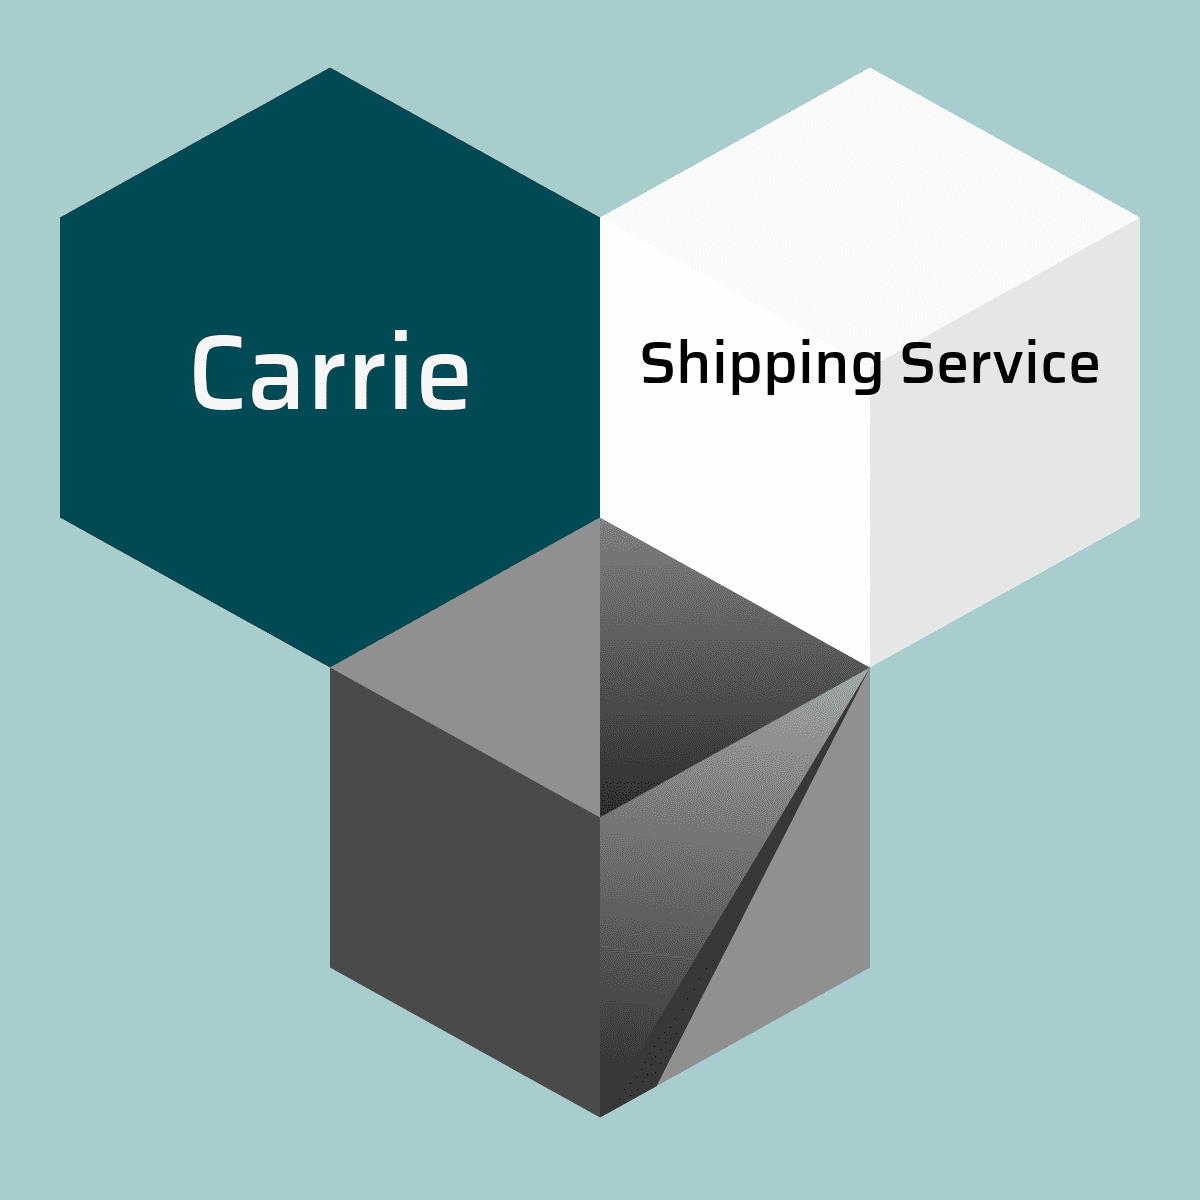 Carrie Shipping Service